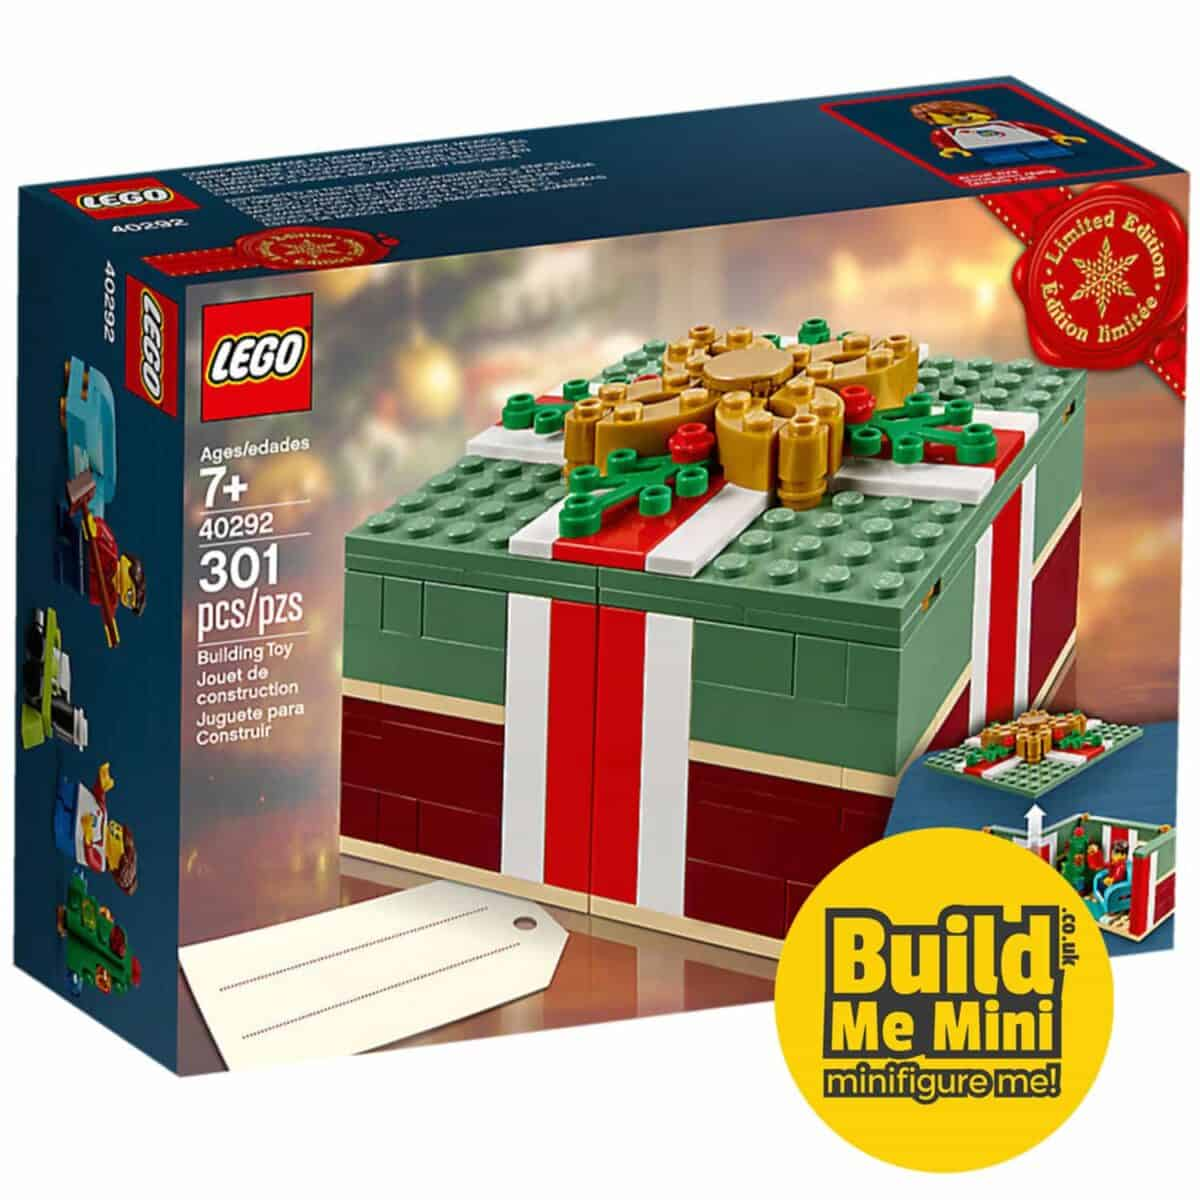 2018 Limited Edition LEGO Christmas Gift Set 40292